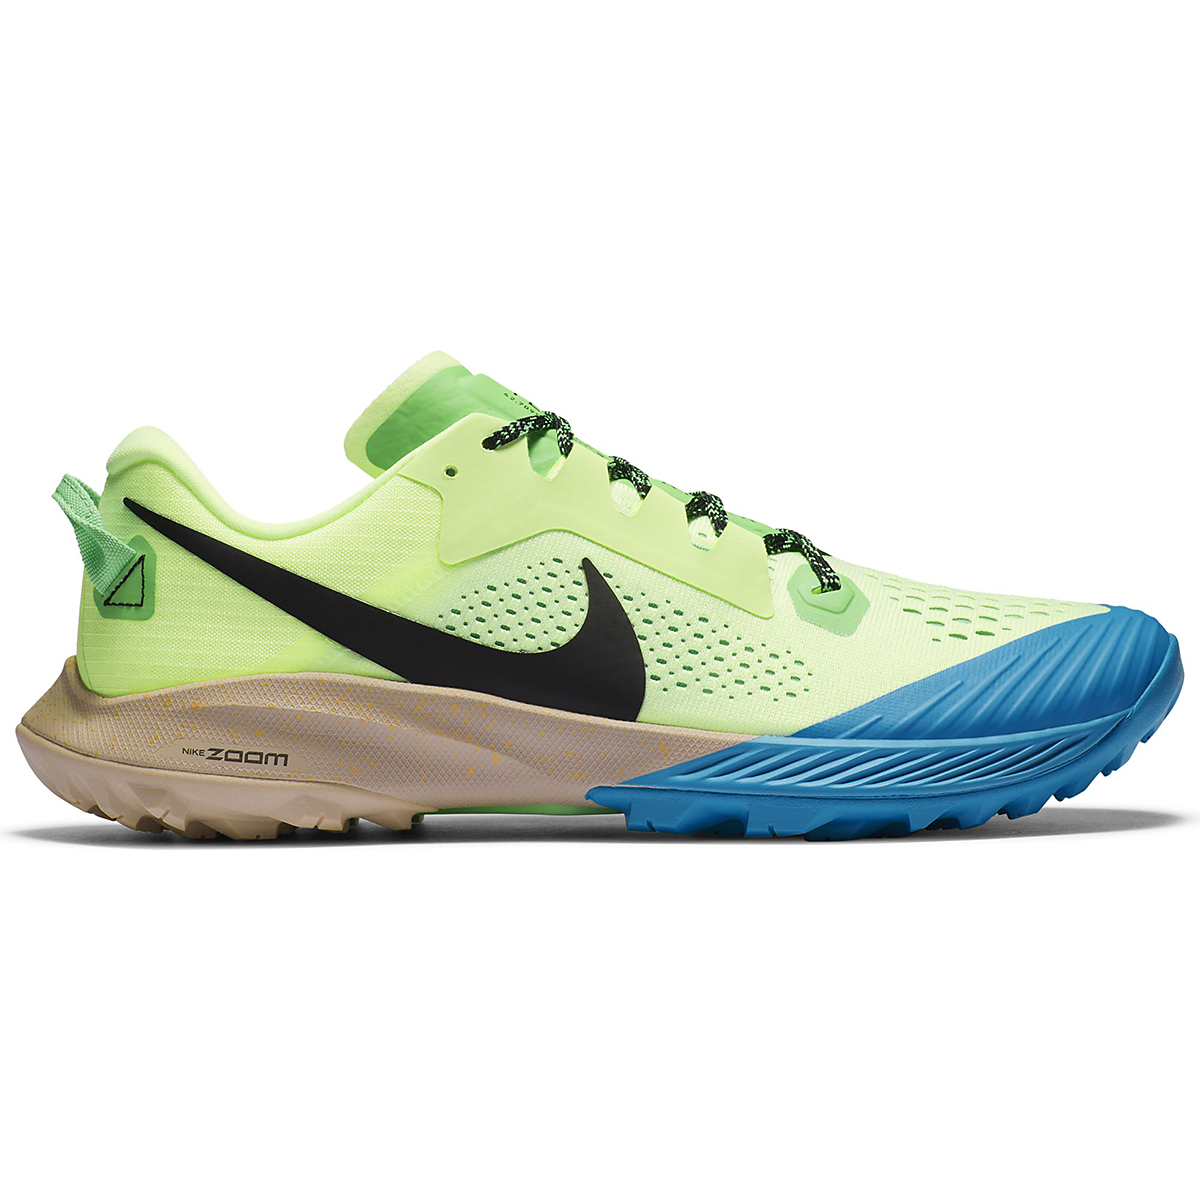 Men's Nike Terra Kiger 6 Trail Running Shoe - Color: Barely Volt/Black-Poison Green - Size: 6 - Width: Regular, Barely Volt/Black-Poison Green, large, image 1